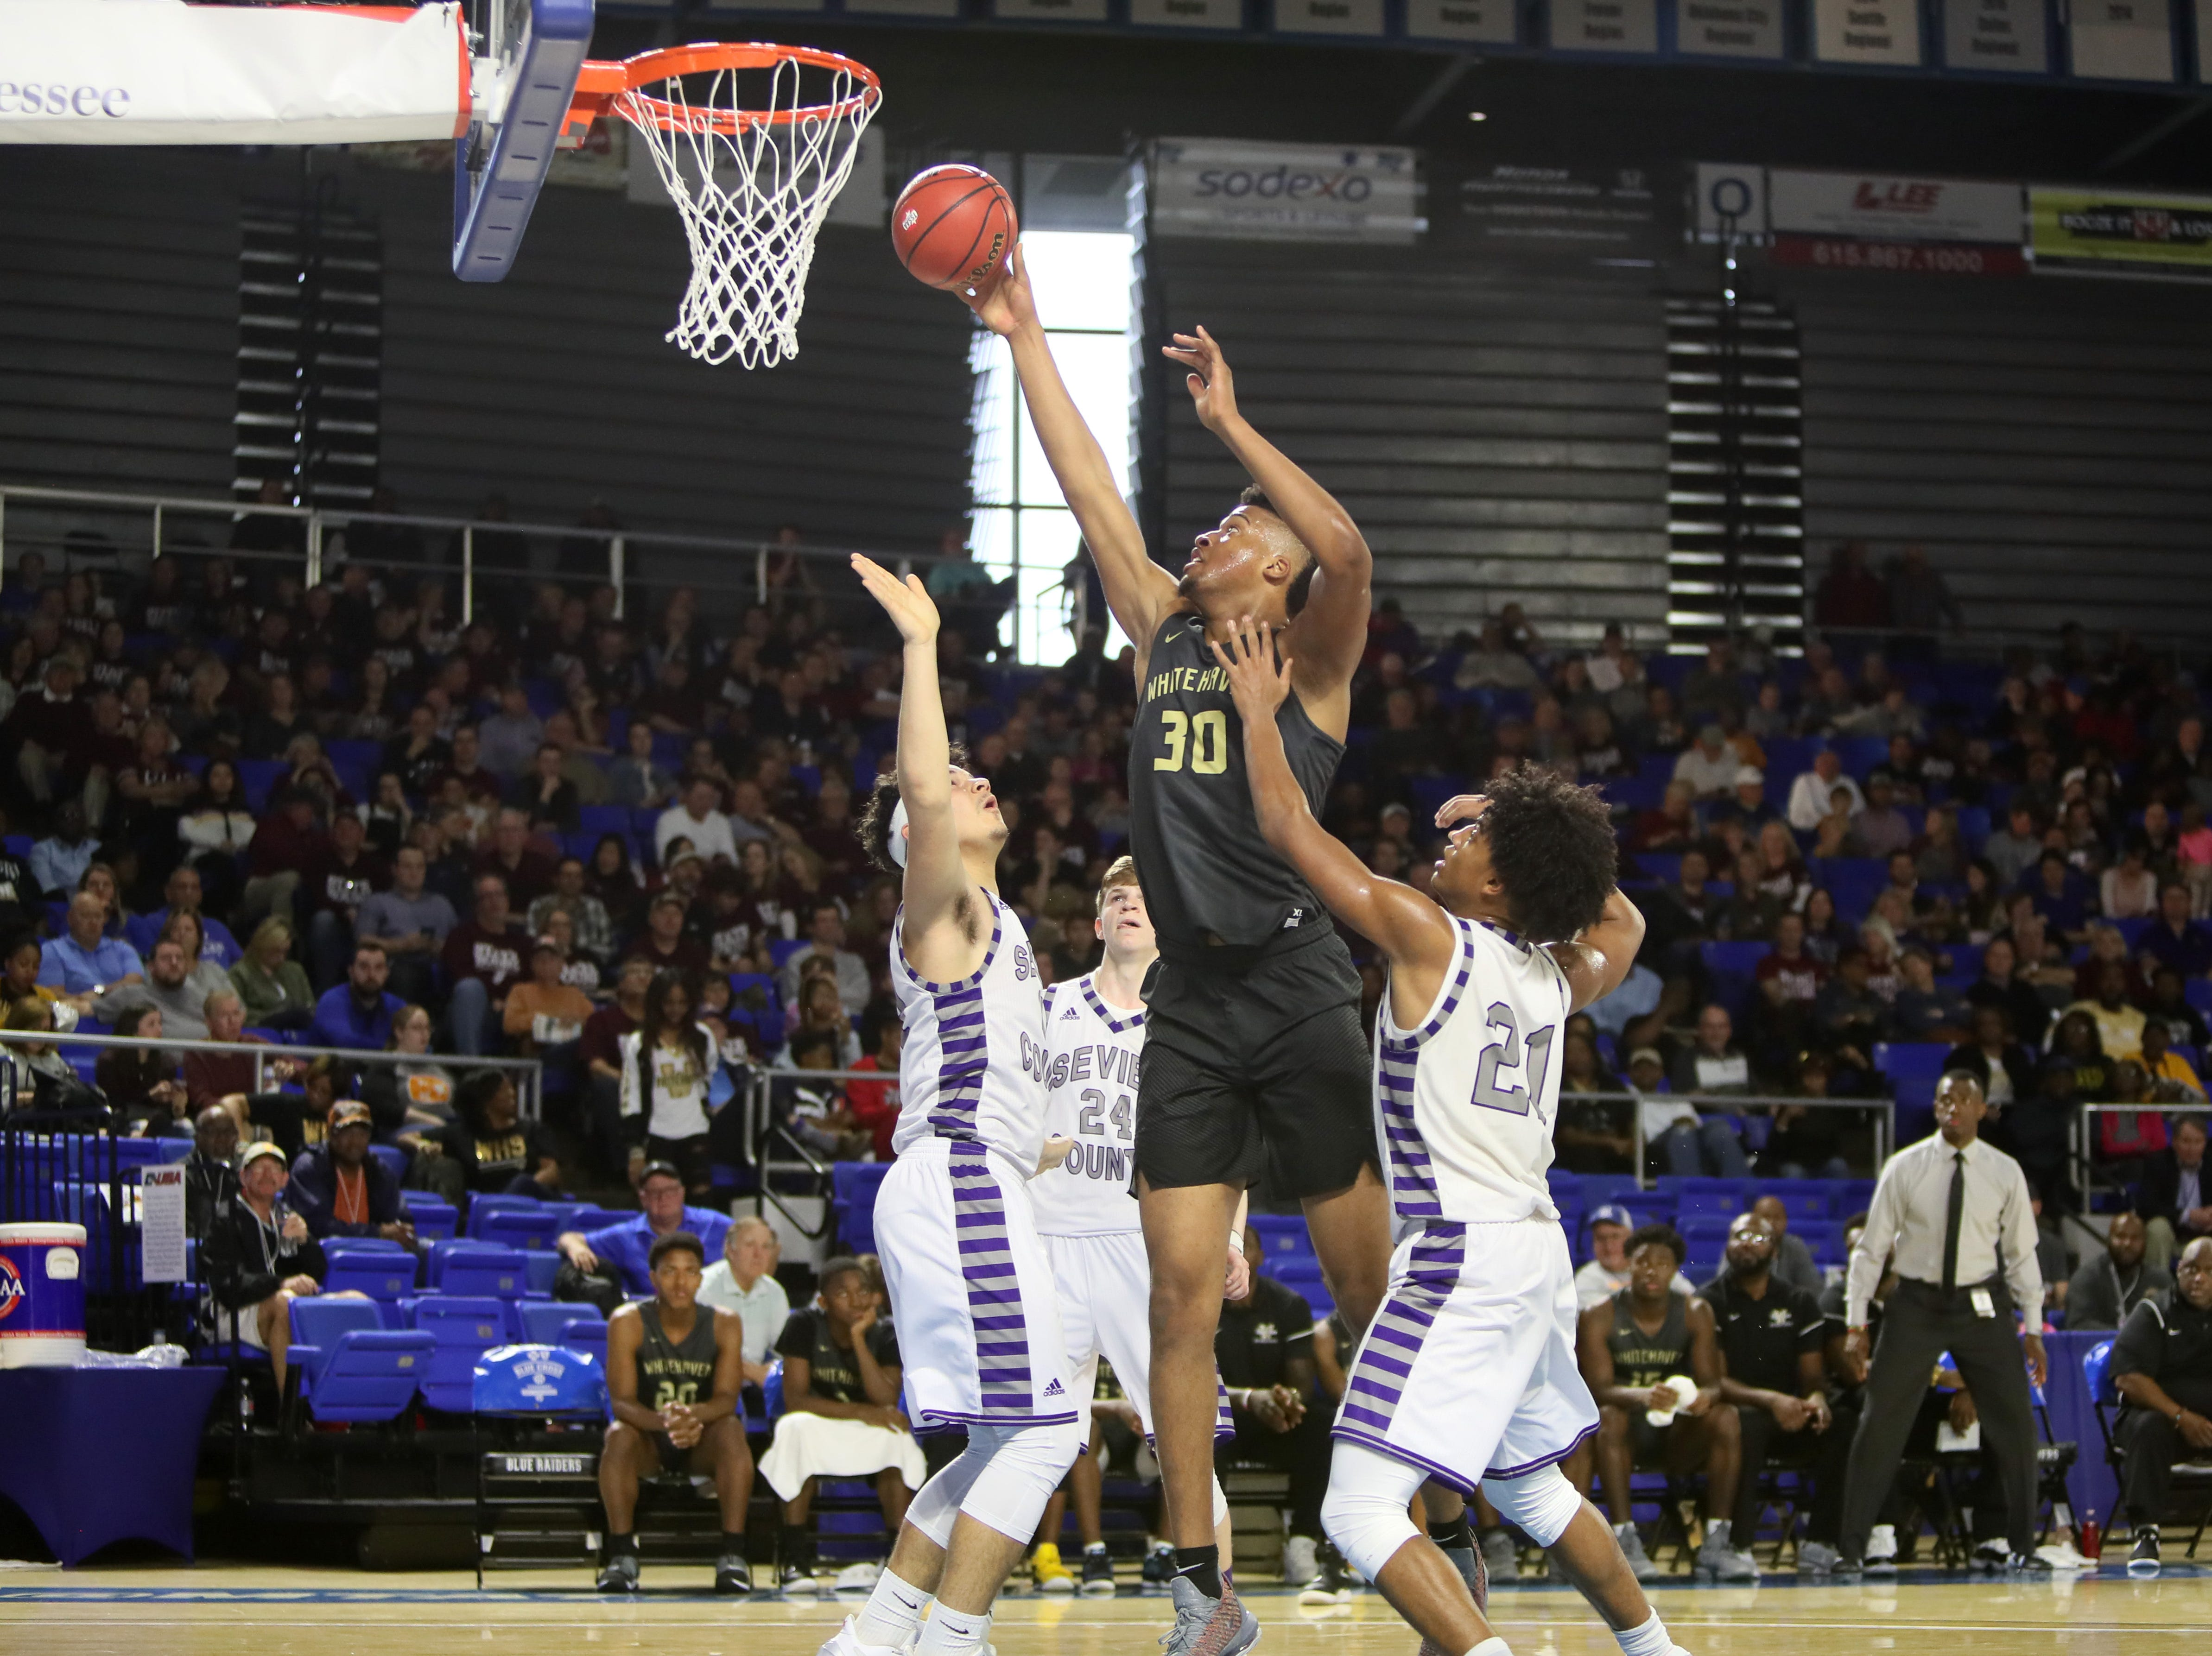 Whitehaven's Jordan Wilmore shoots the ball over Sevier County's Tyler Wilson, left, and Cam Burden during the TSSAA Division I basketball state tournament at the Murphy Center in Murfreesboro, Tenn. on Wednesday, March 13, 2019.